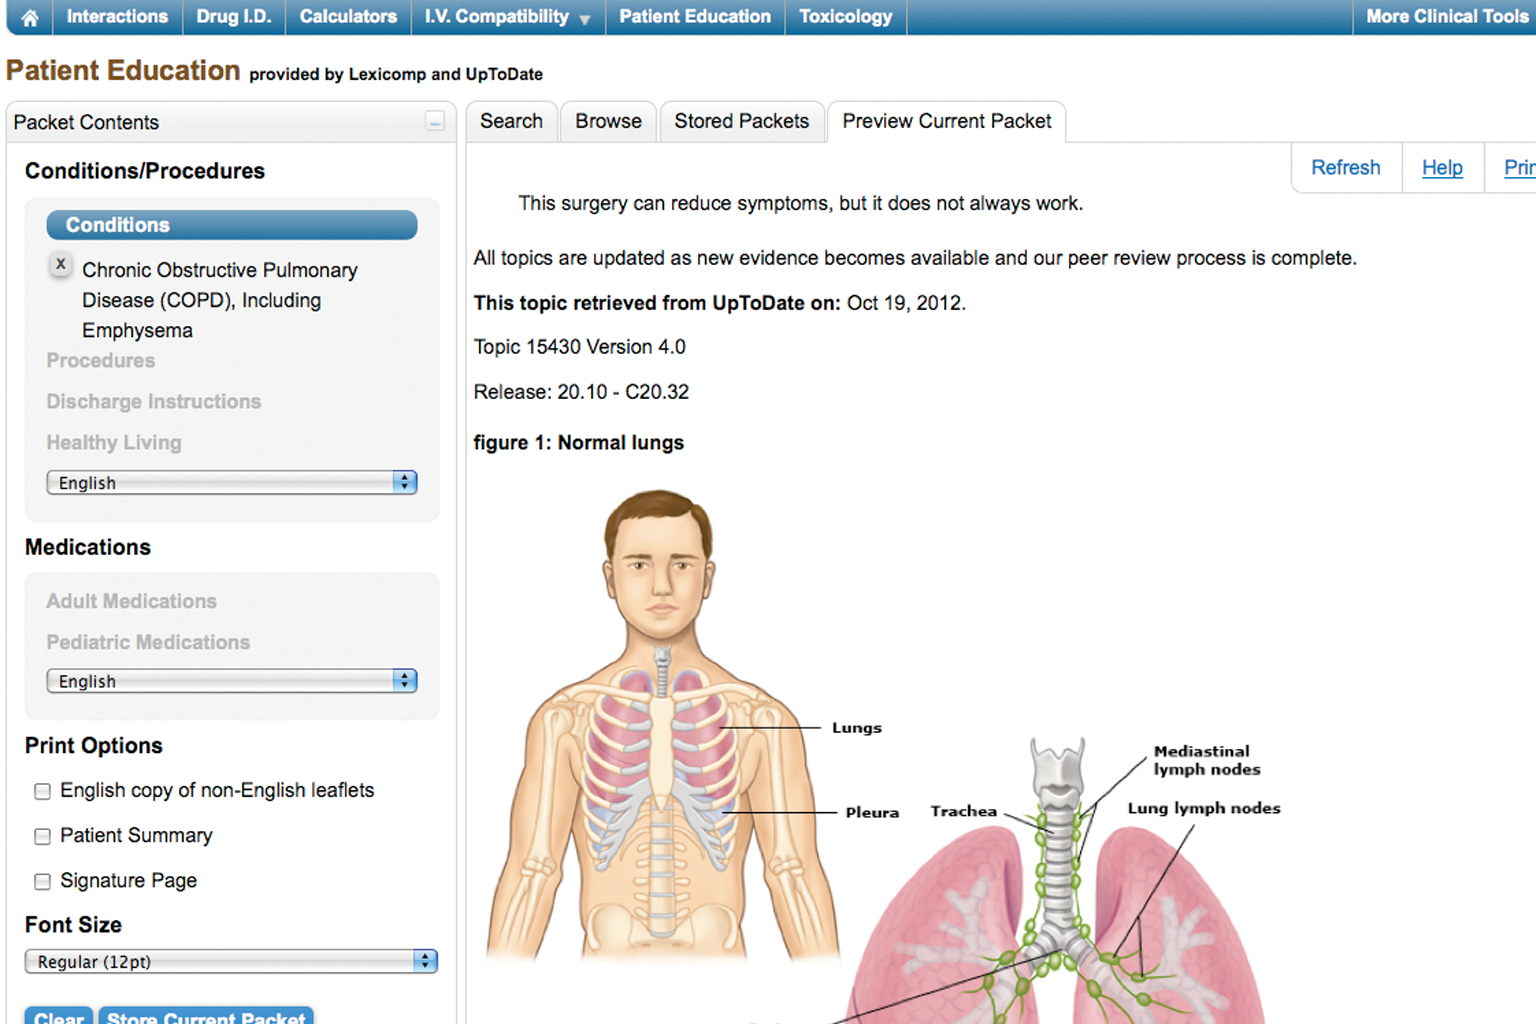 screenshot of Lexicomp patient education